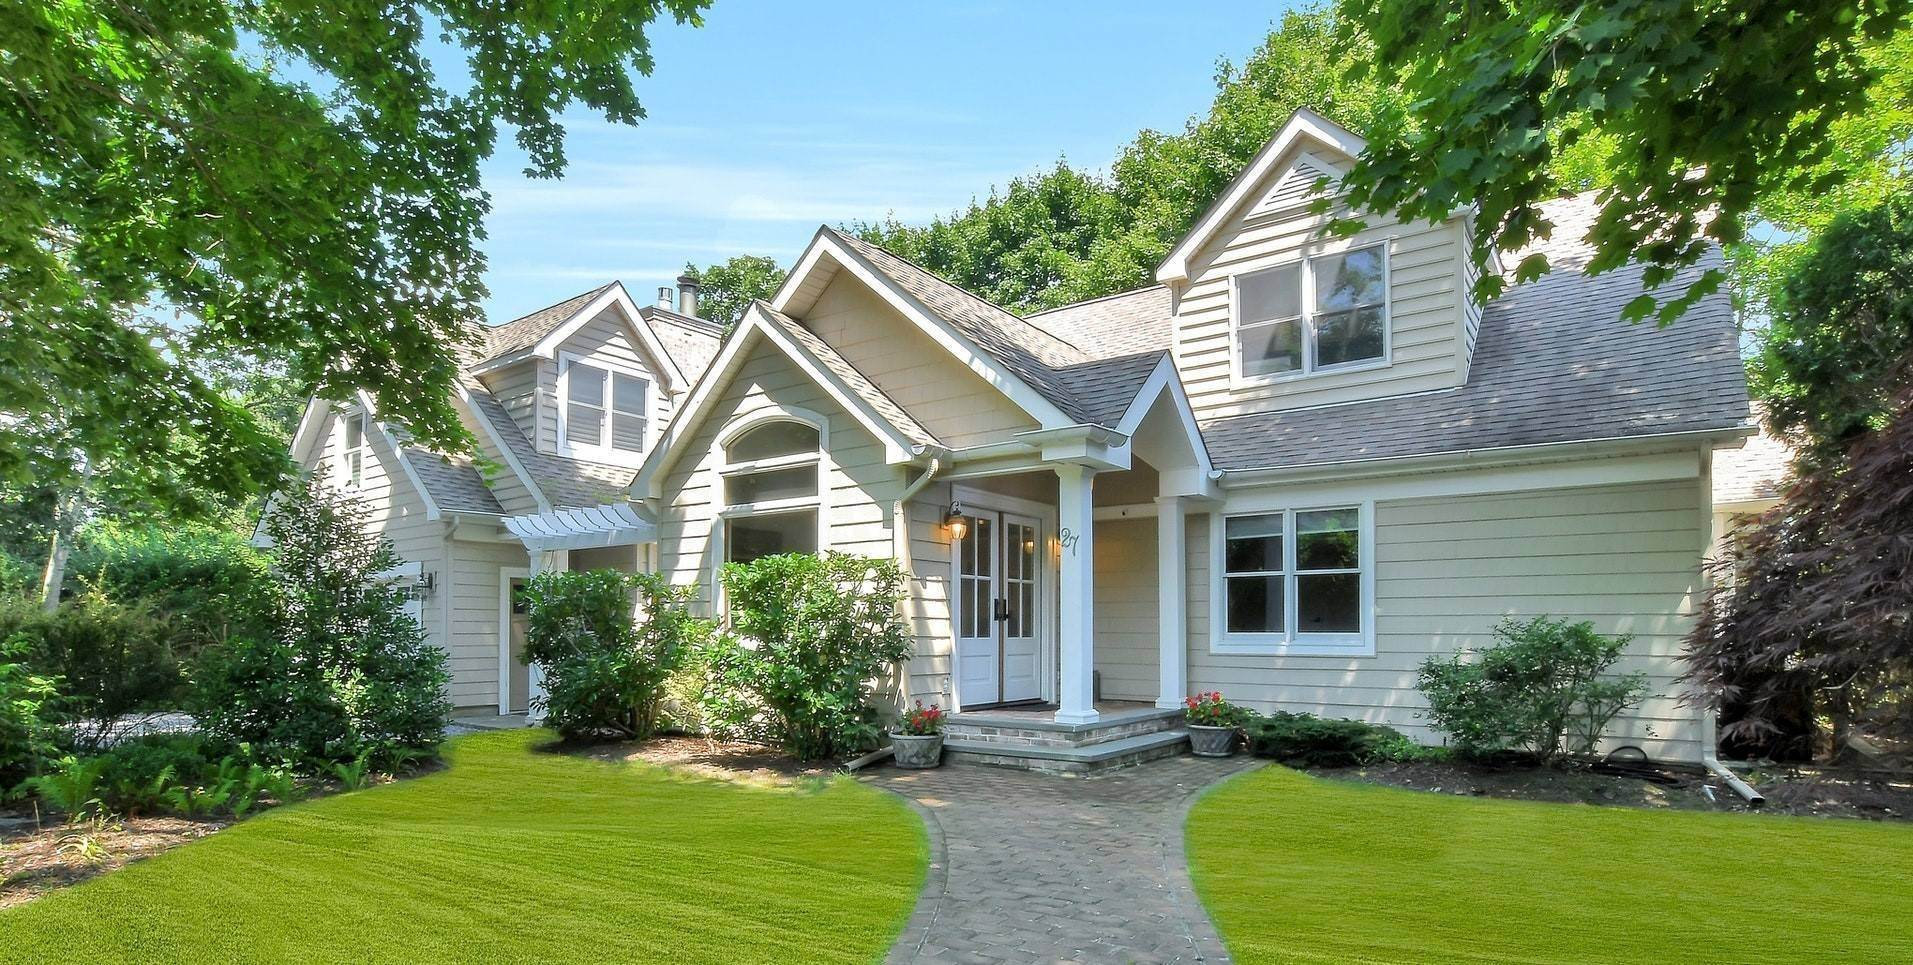 Single Family Home for Sale at Beautiful Post Modern South Of The Highway 27 Baycrest Avenue, Westhampton, NY 11977